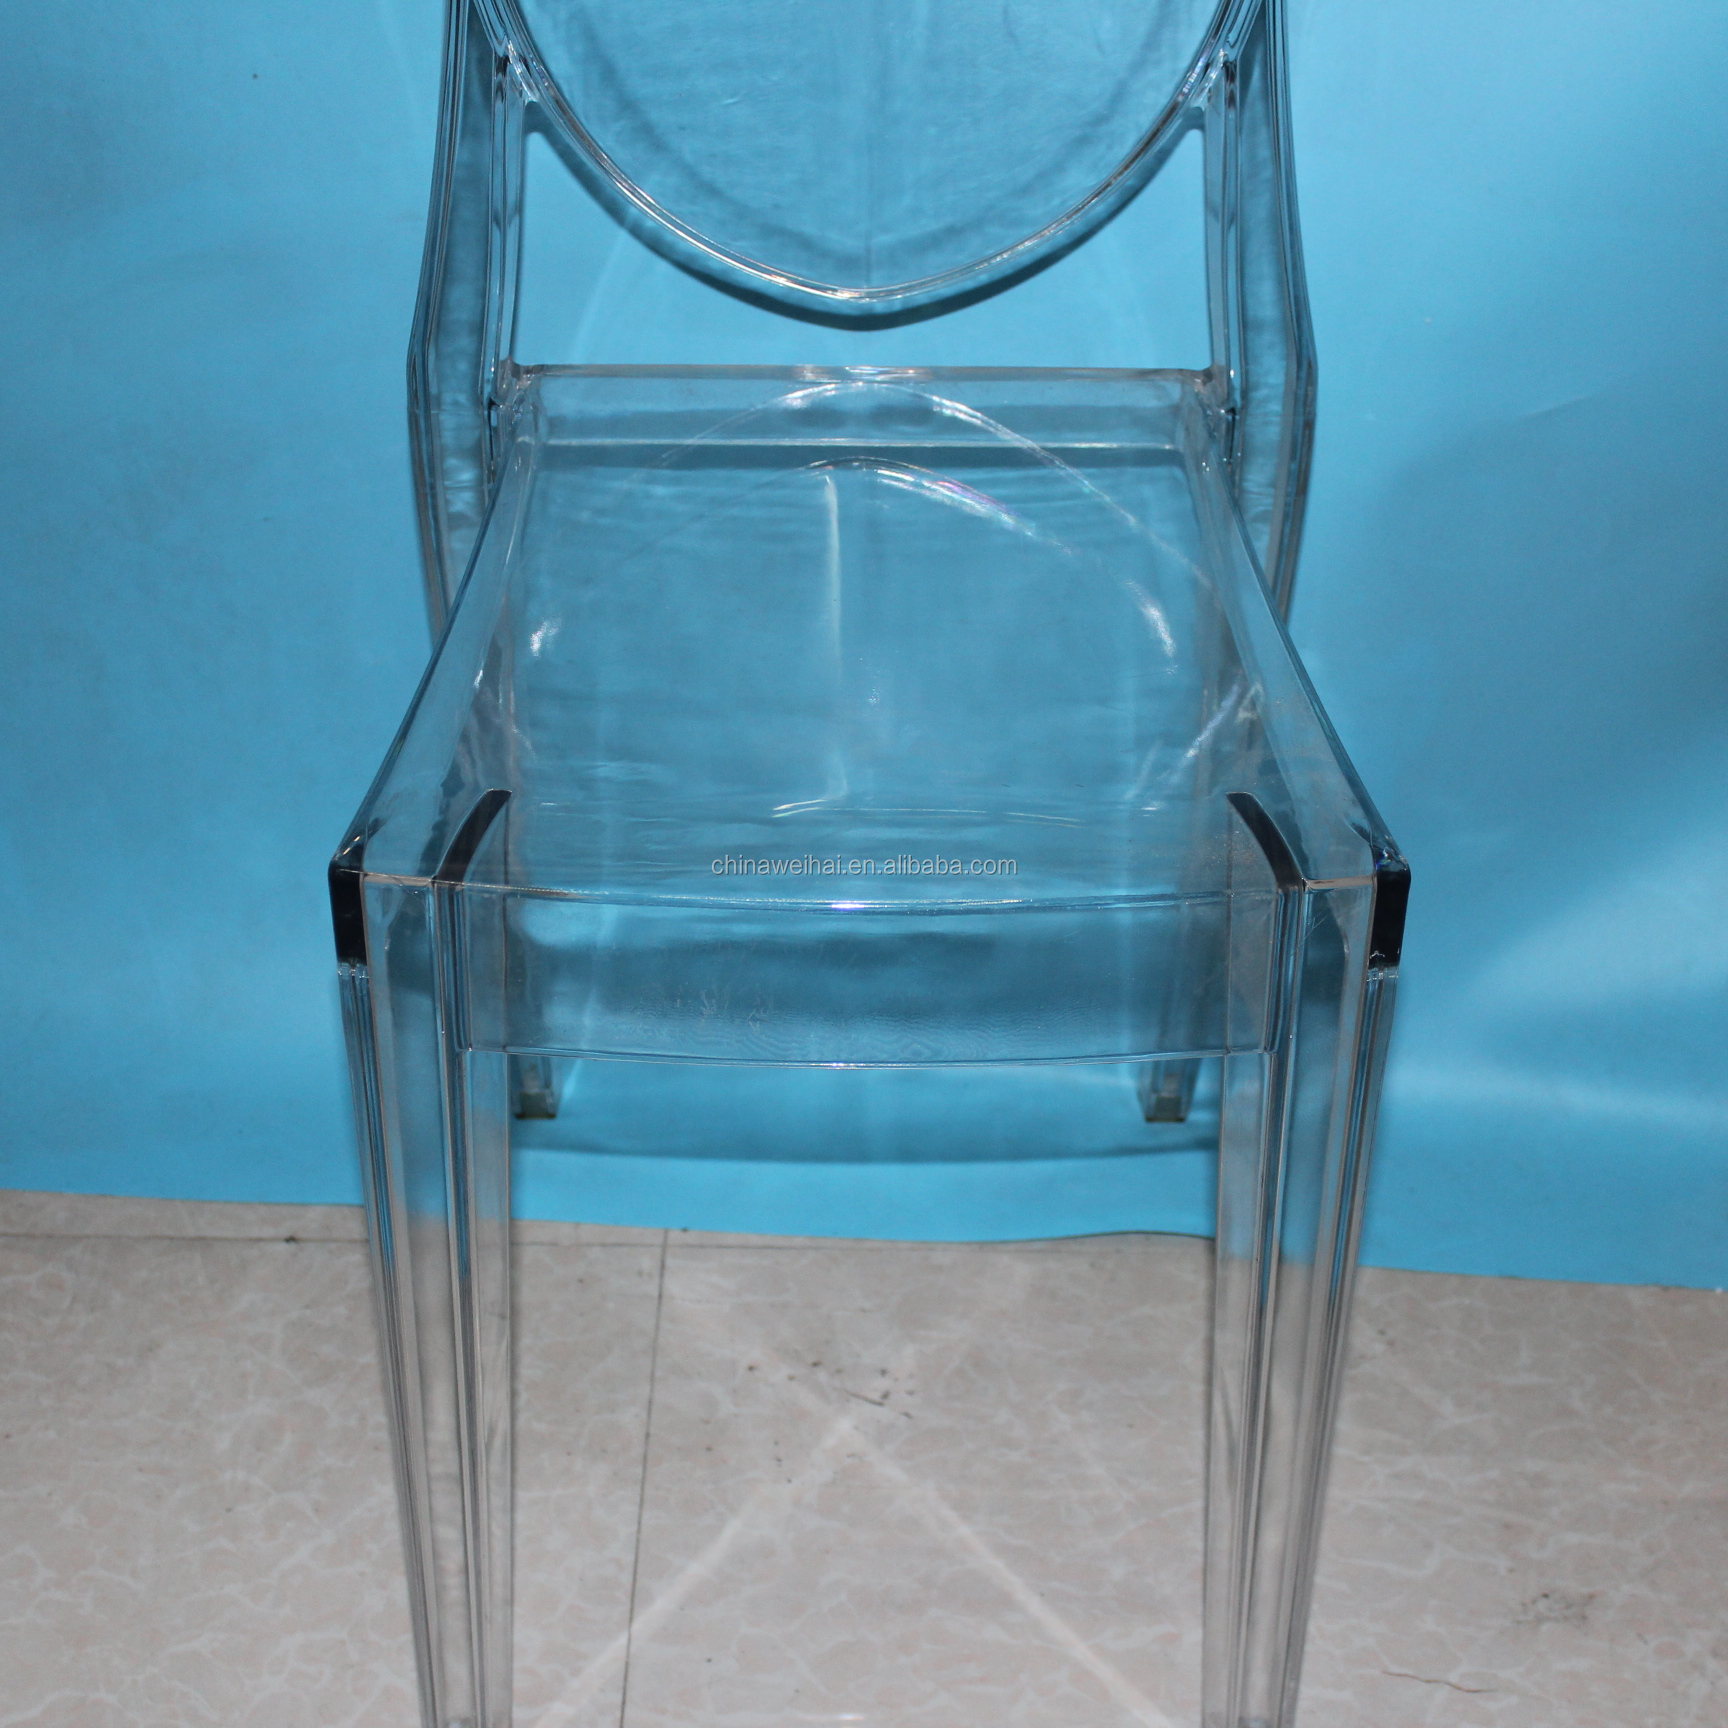 2018 New Design Acrylic Chair